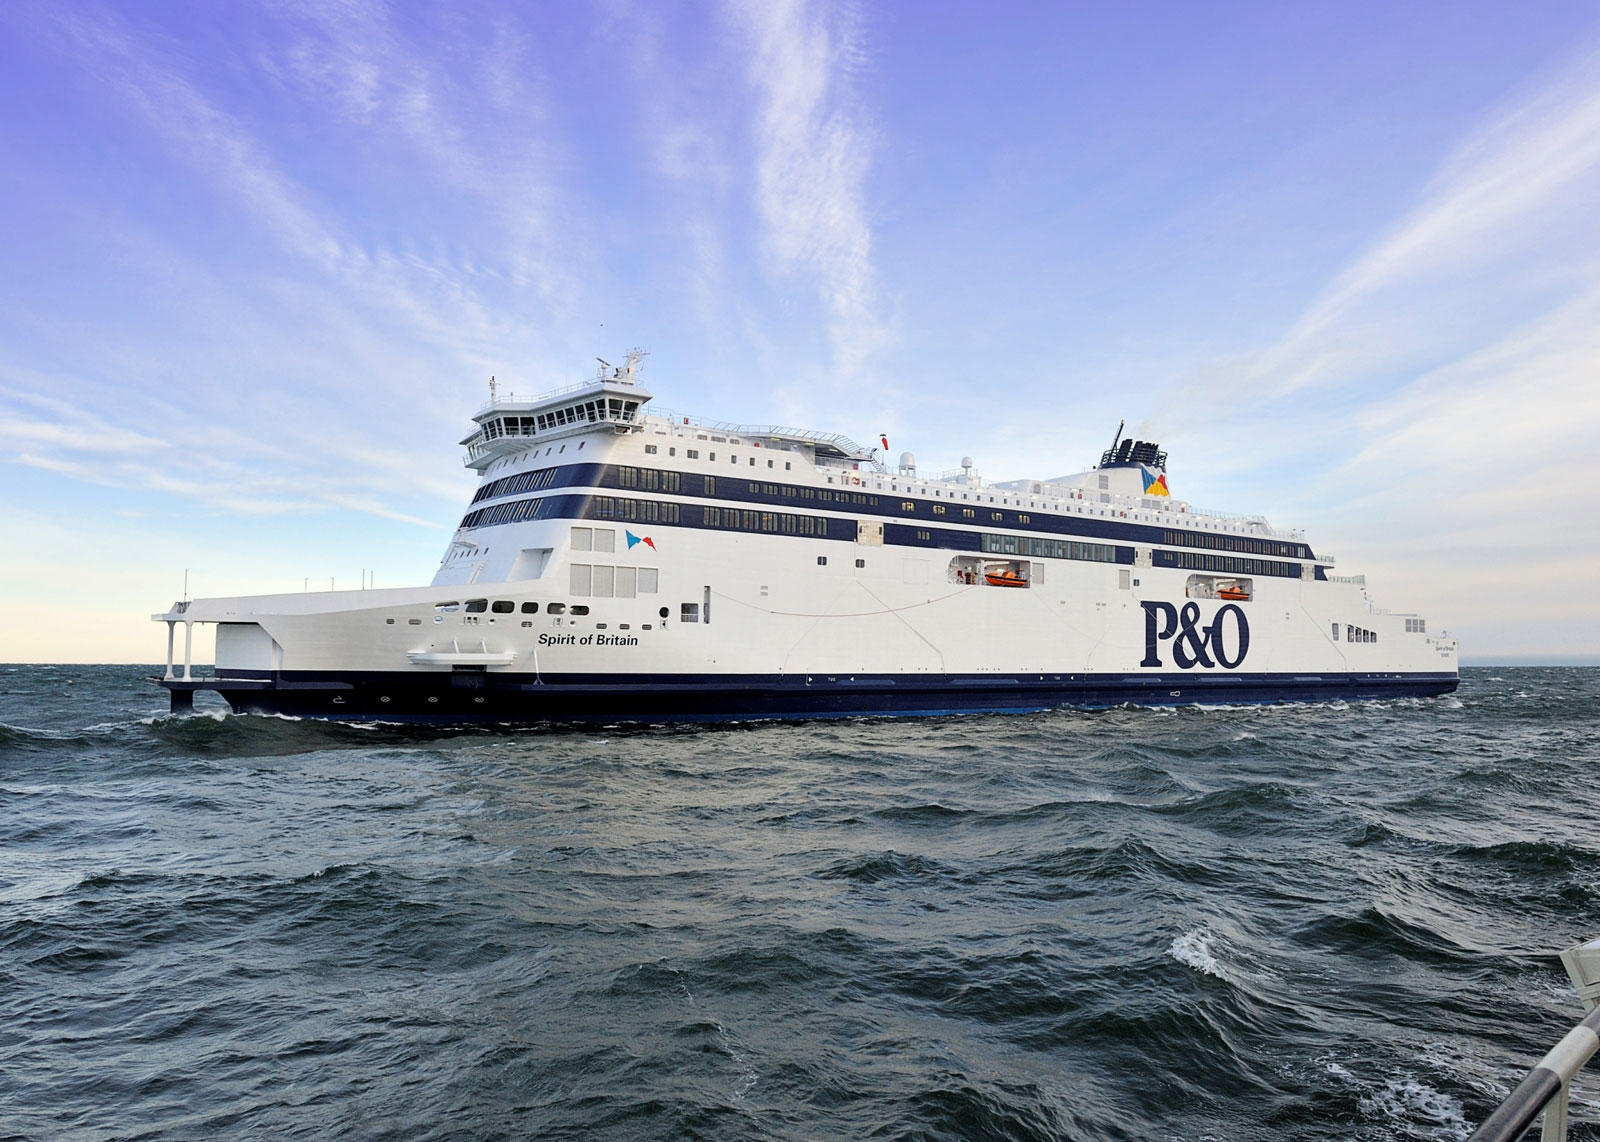 Spirit of Britain - The World's Largest Ferry Ship